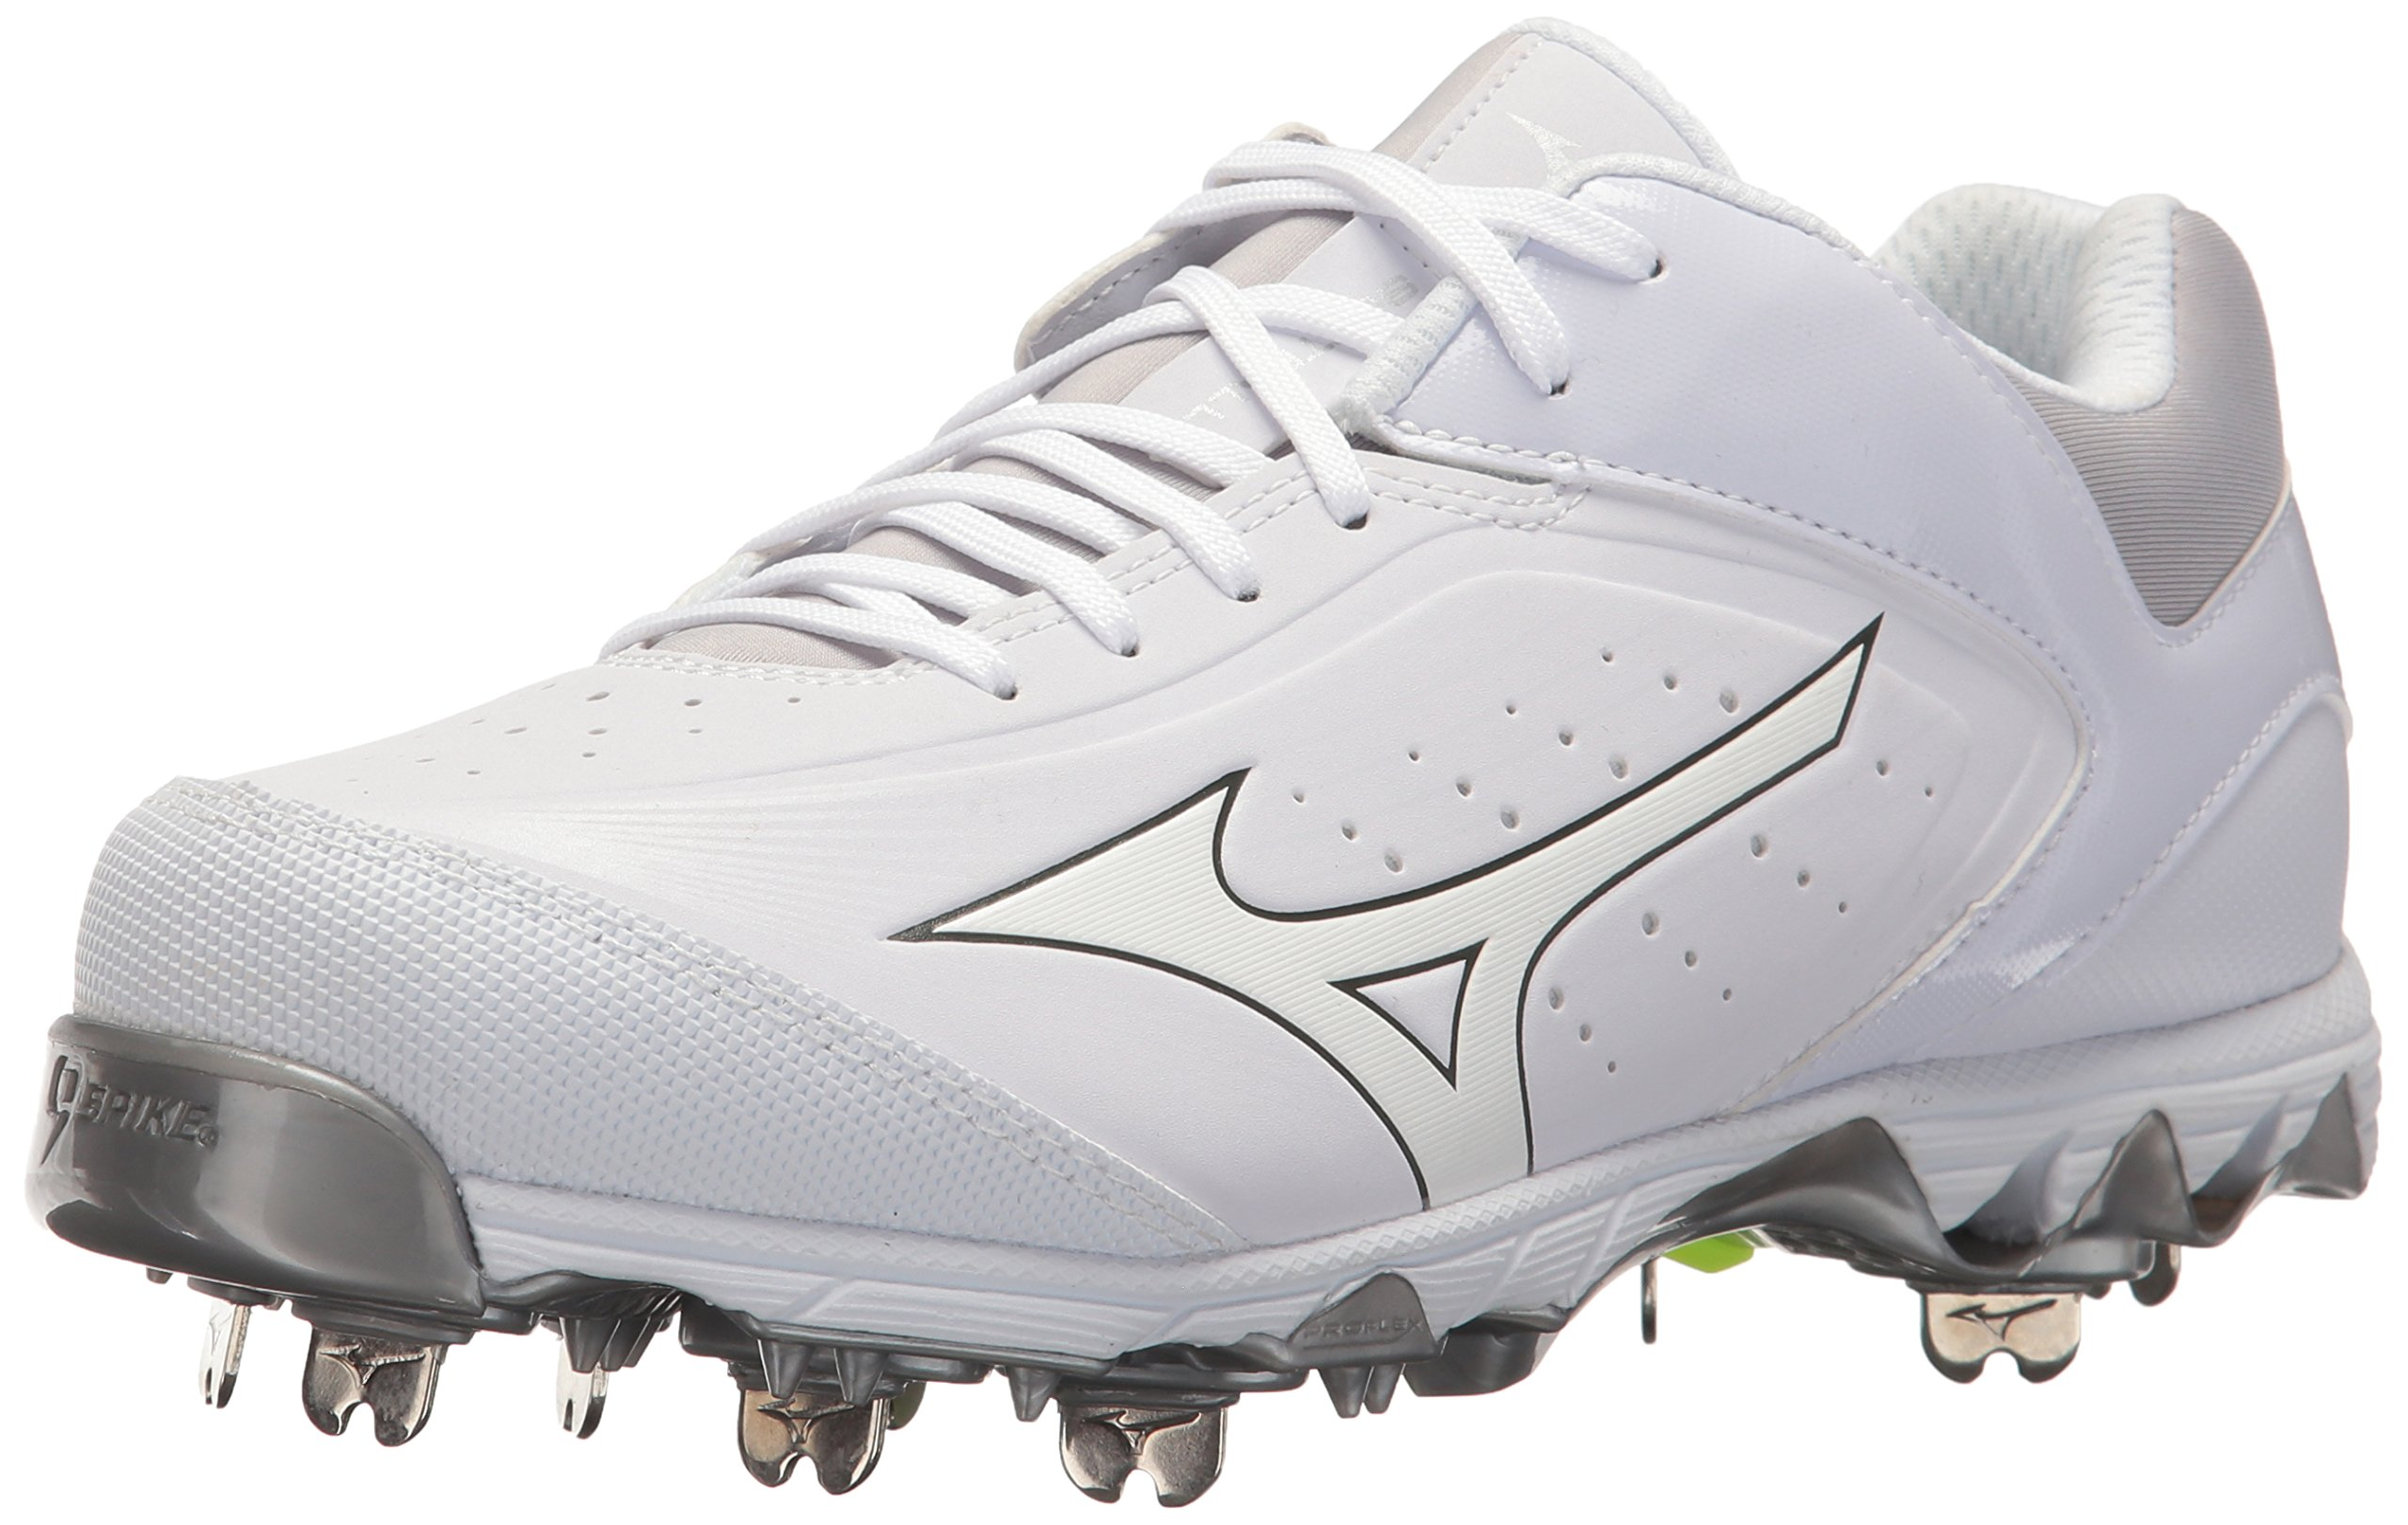 Mizuno Women's Swift 5 Fastpitch Cleat Softball Shoe, White/White, 7 B US